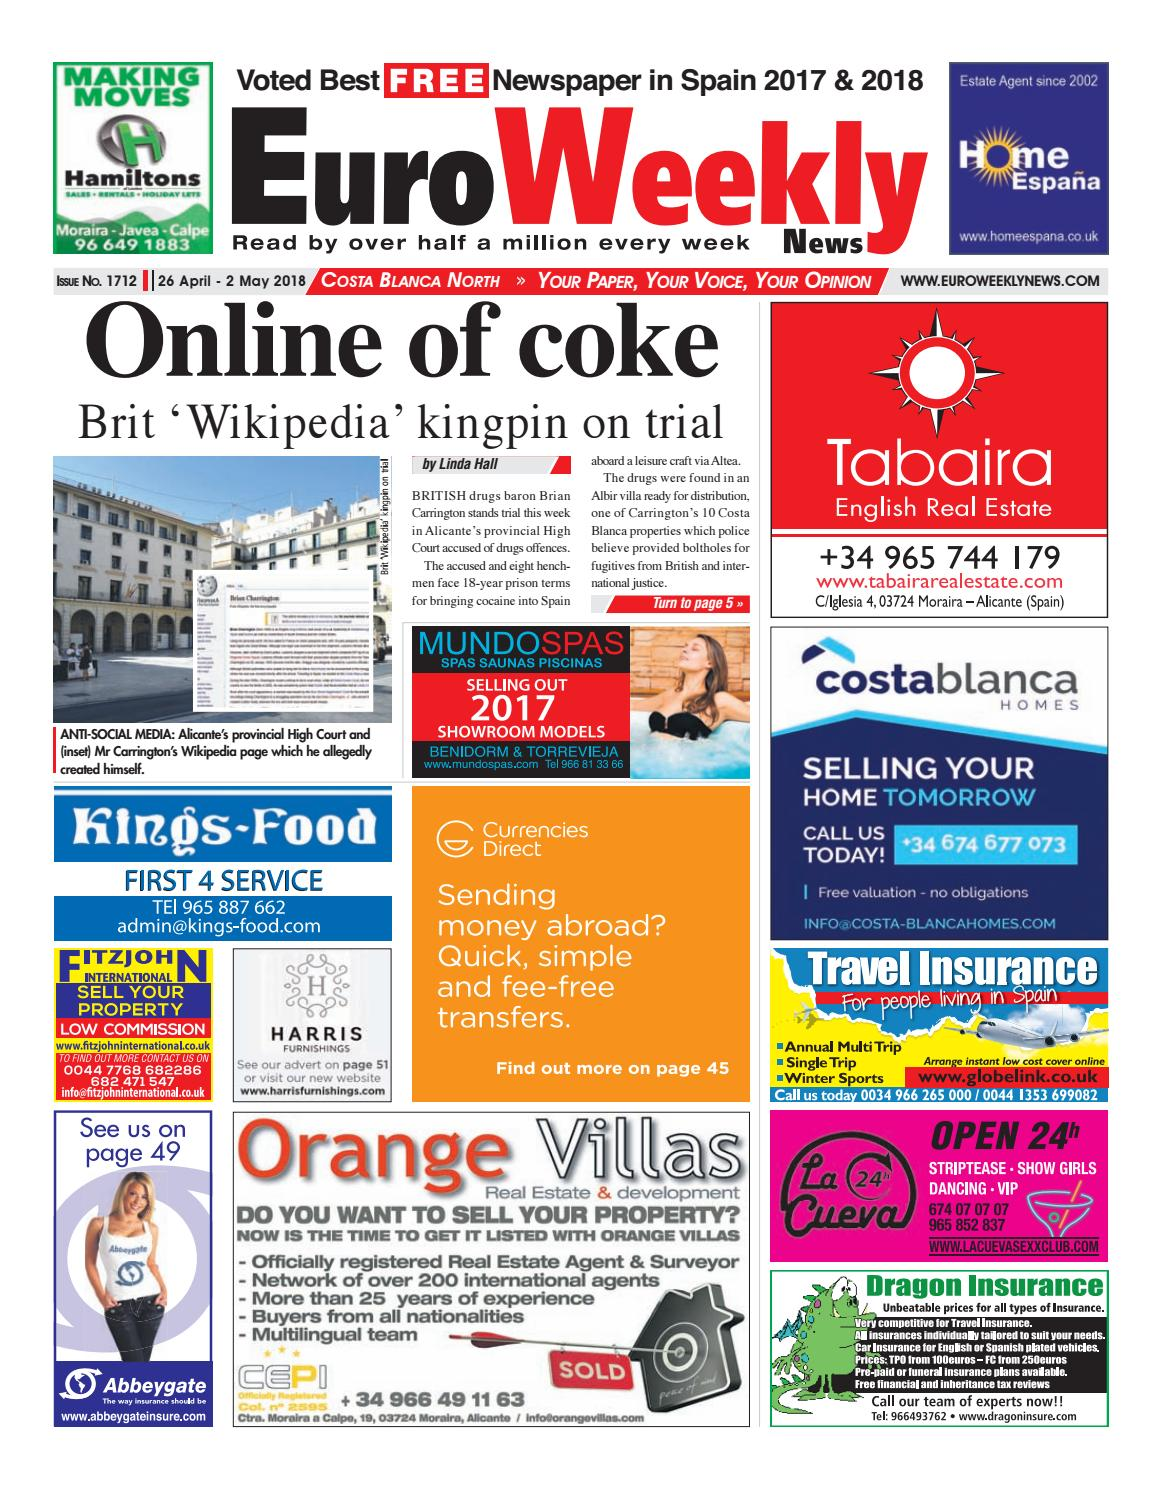 Euro Weekly News - Costa Blanca North 26 April - 2 May 2018 Issue 1712 by  Euro Weekly News Media S.A. - issuu 785ec4879